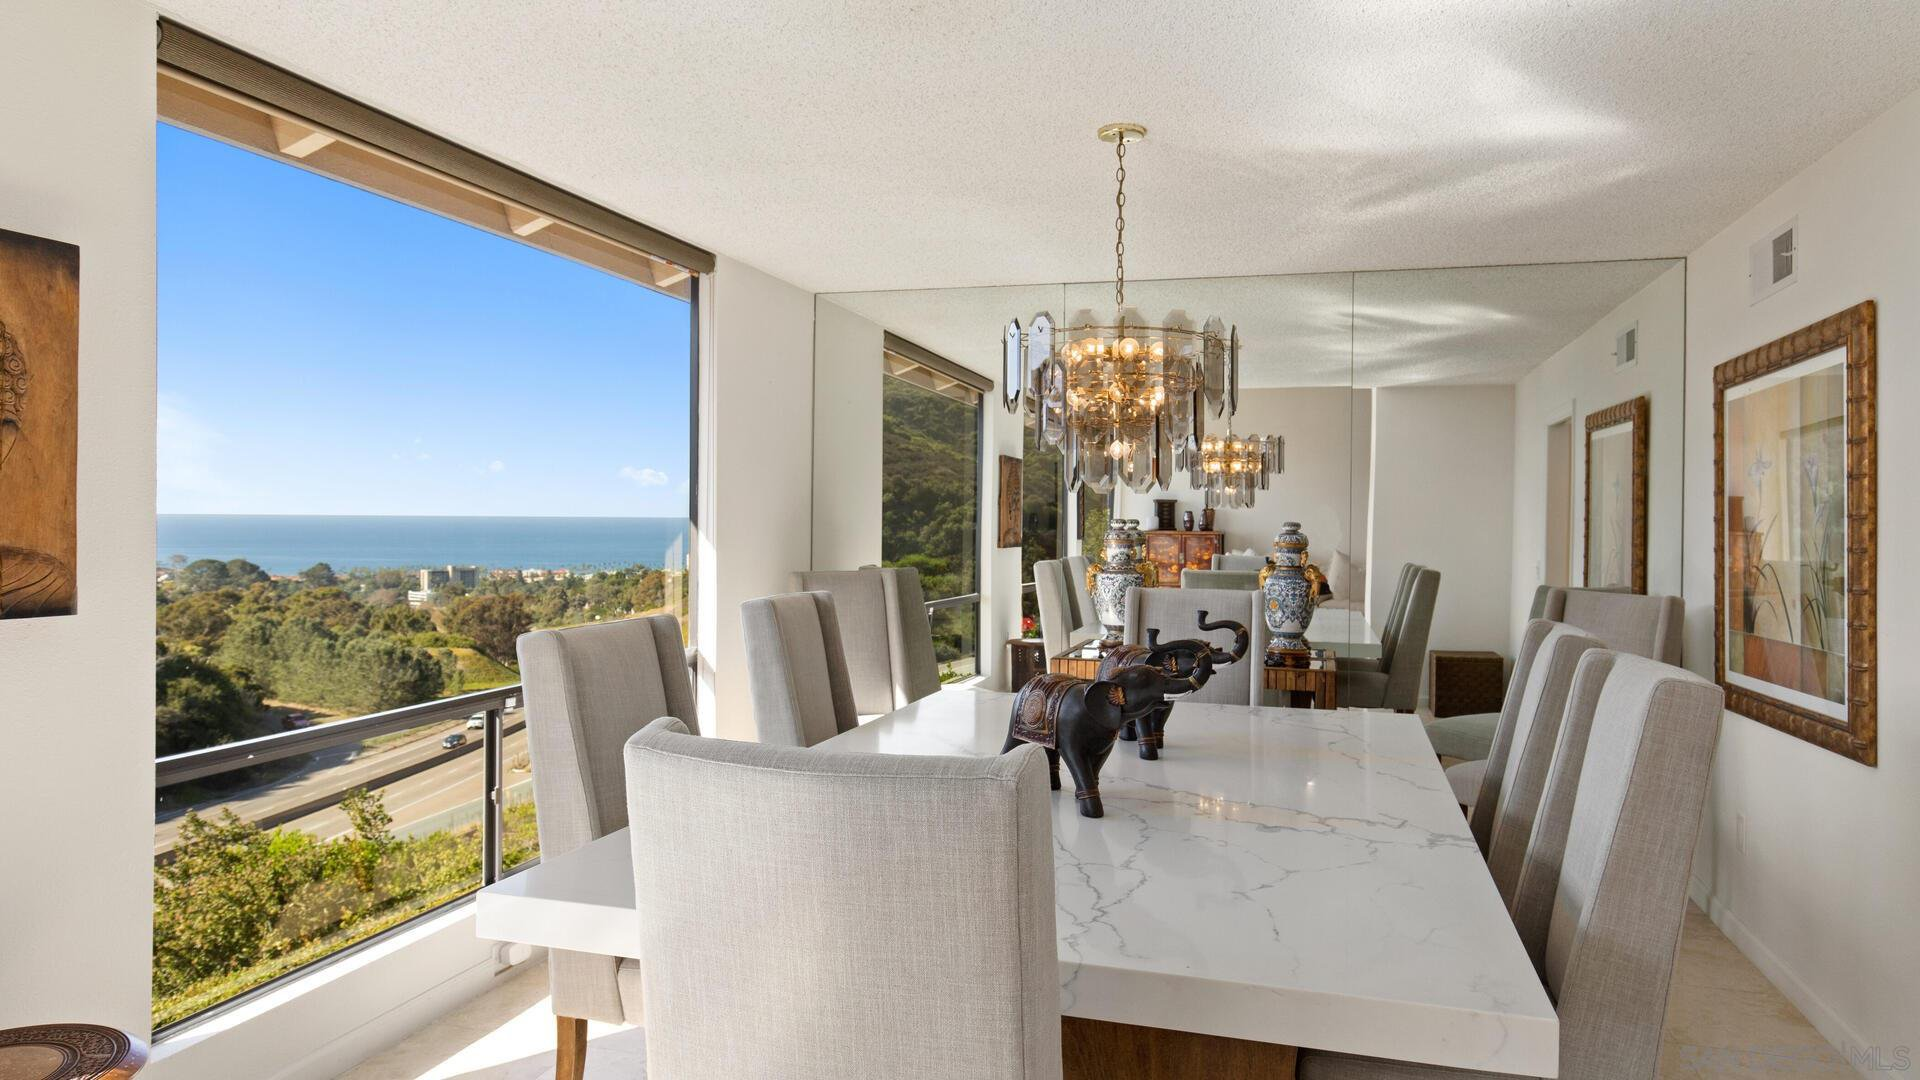 Main Photo: LA JOLLA Condo for sale : 4 bedrooms : 7646 Caminito Coromandel